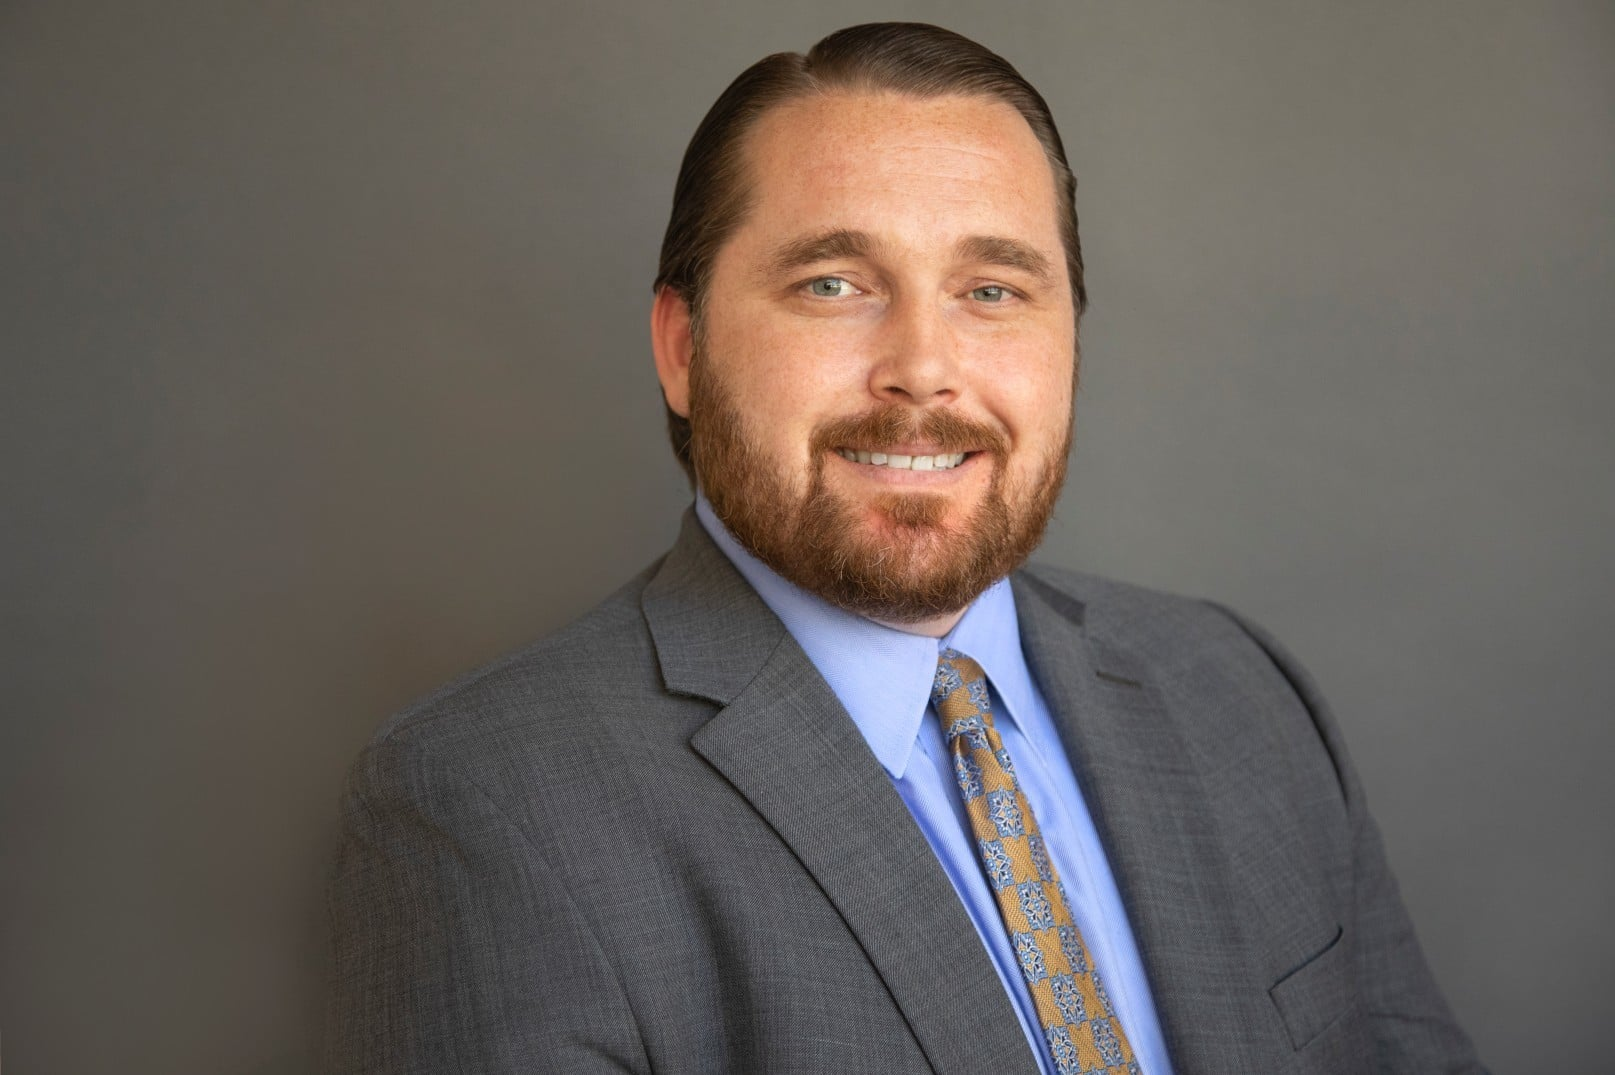 Taylor, R&R Law Group